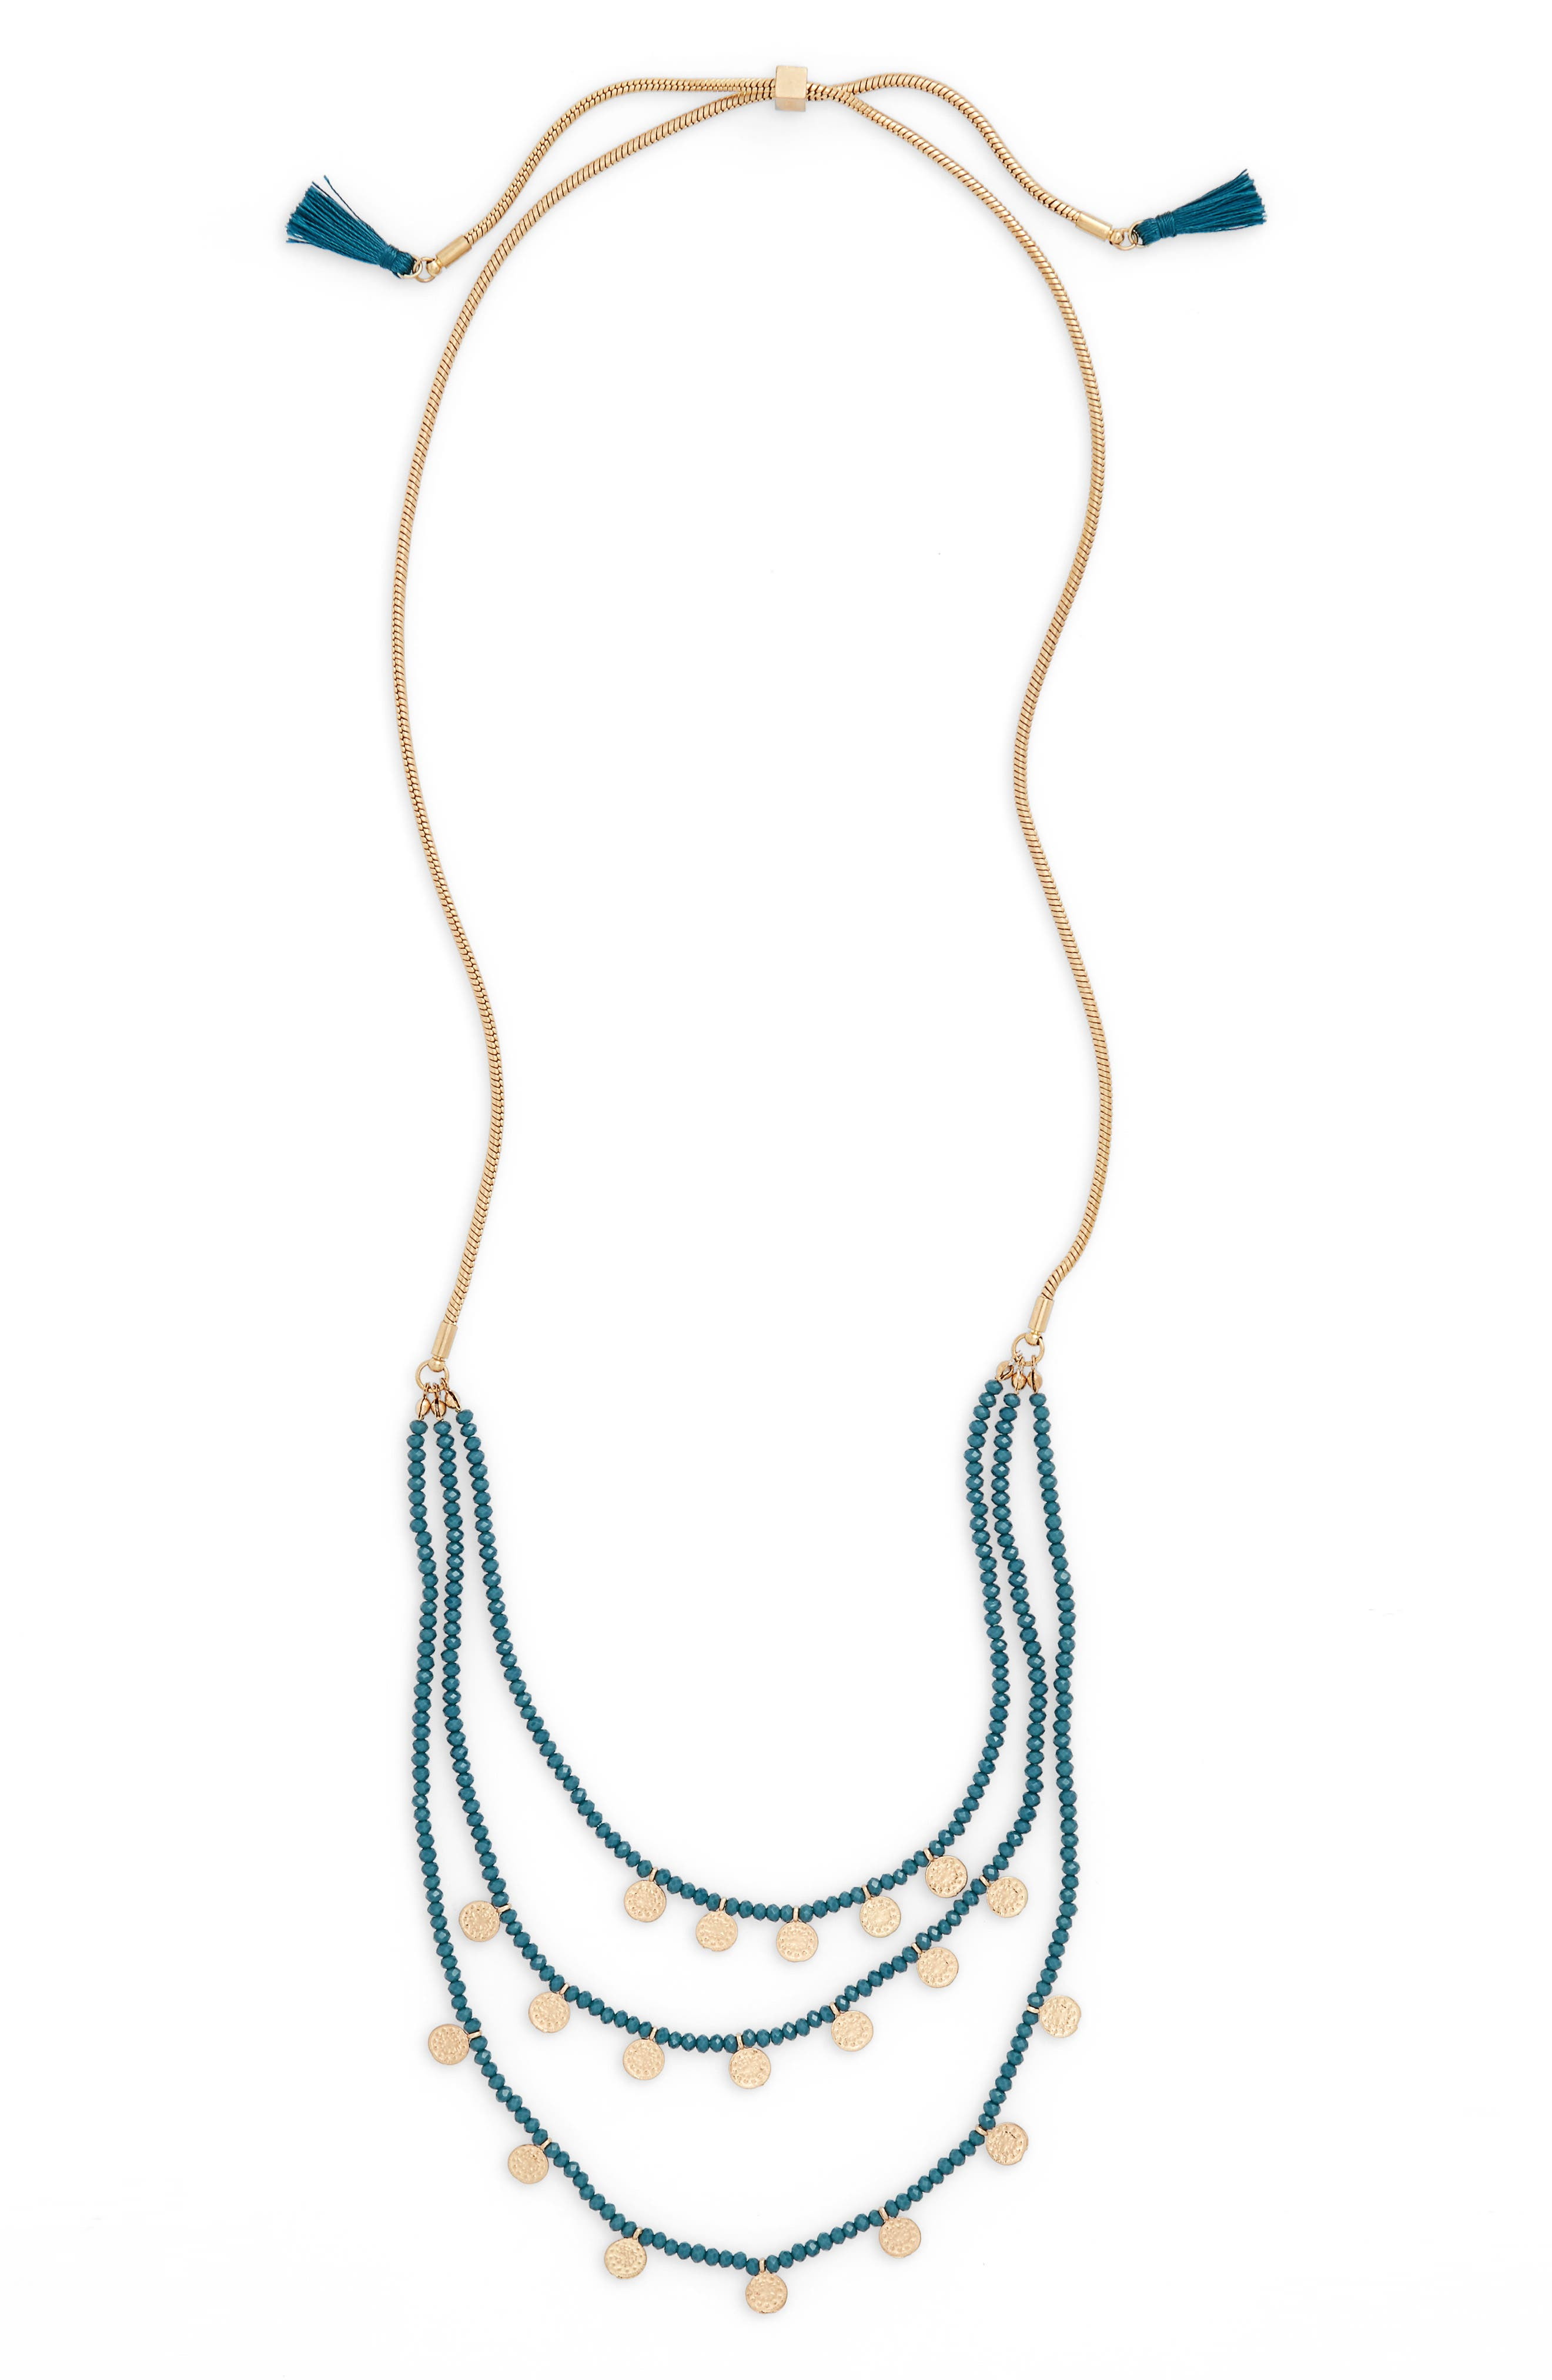 Medallion & Bead Necklace,                         Main,                         color, Teal